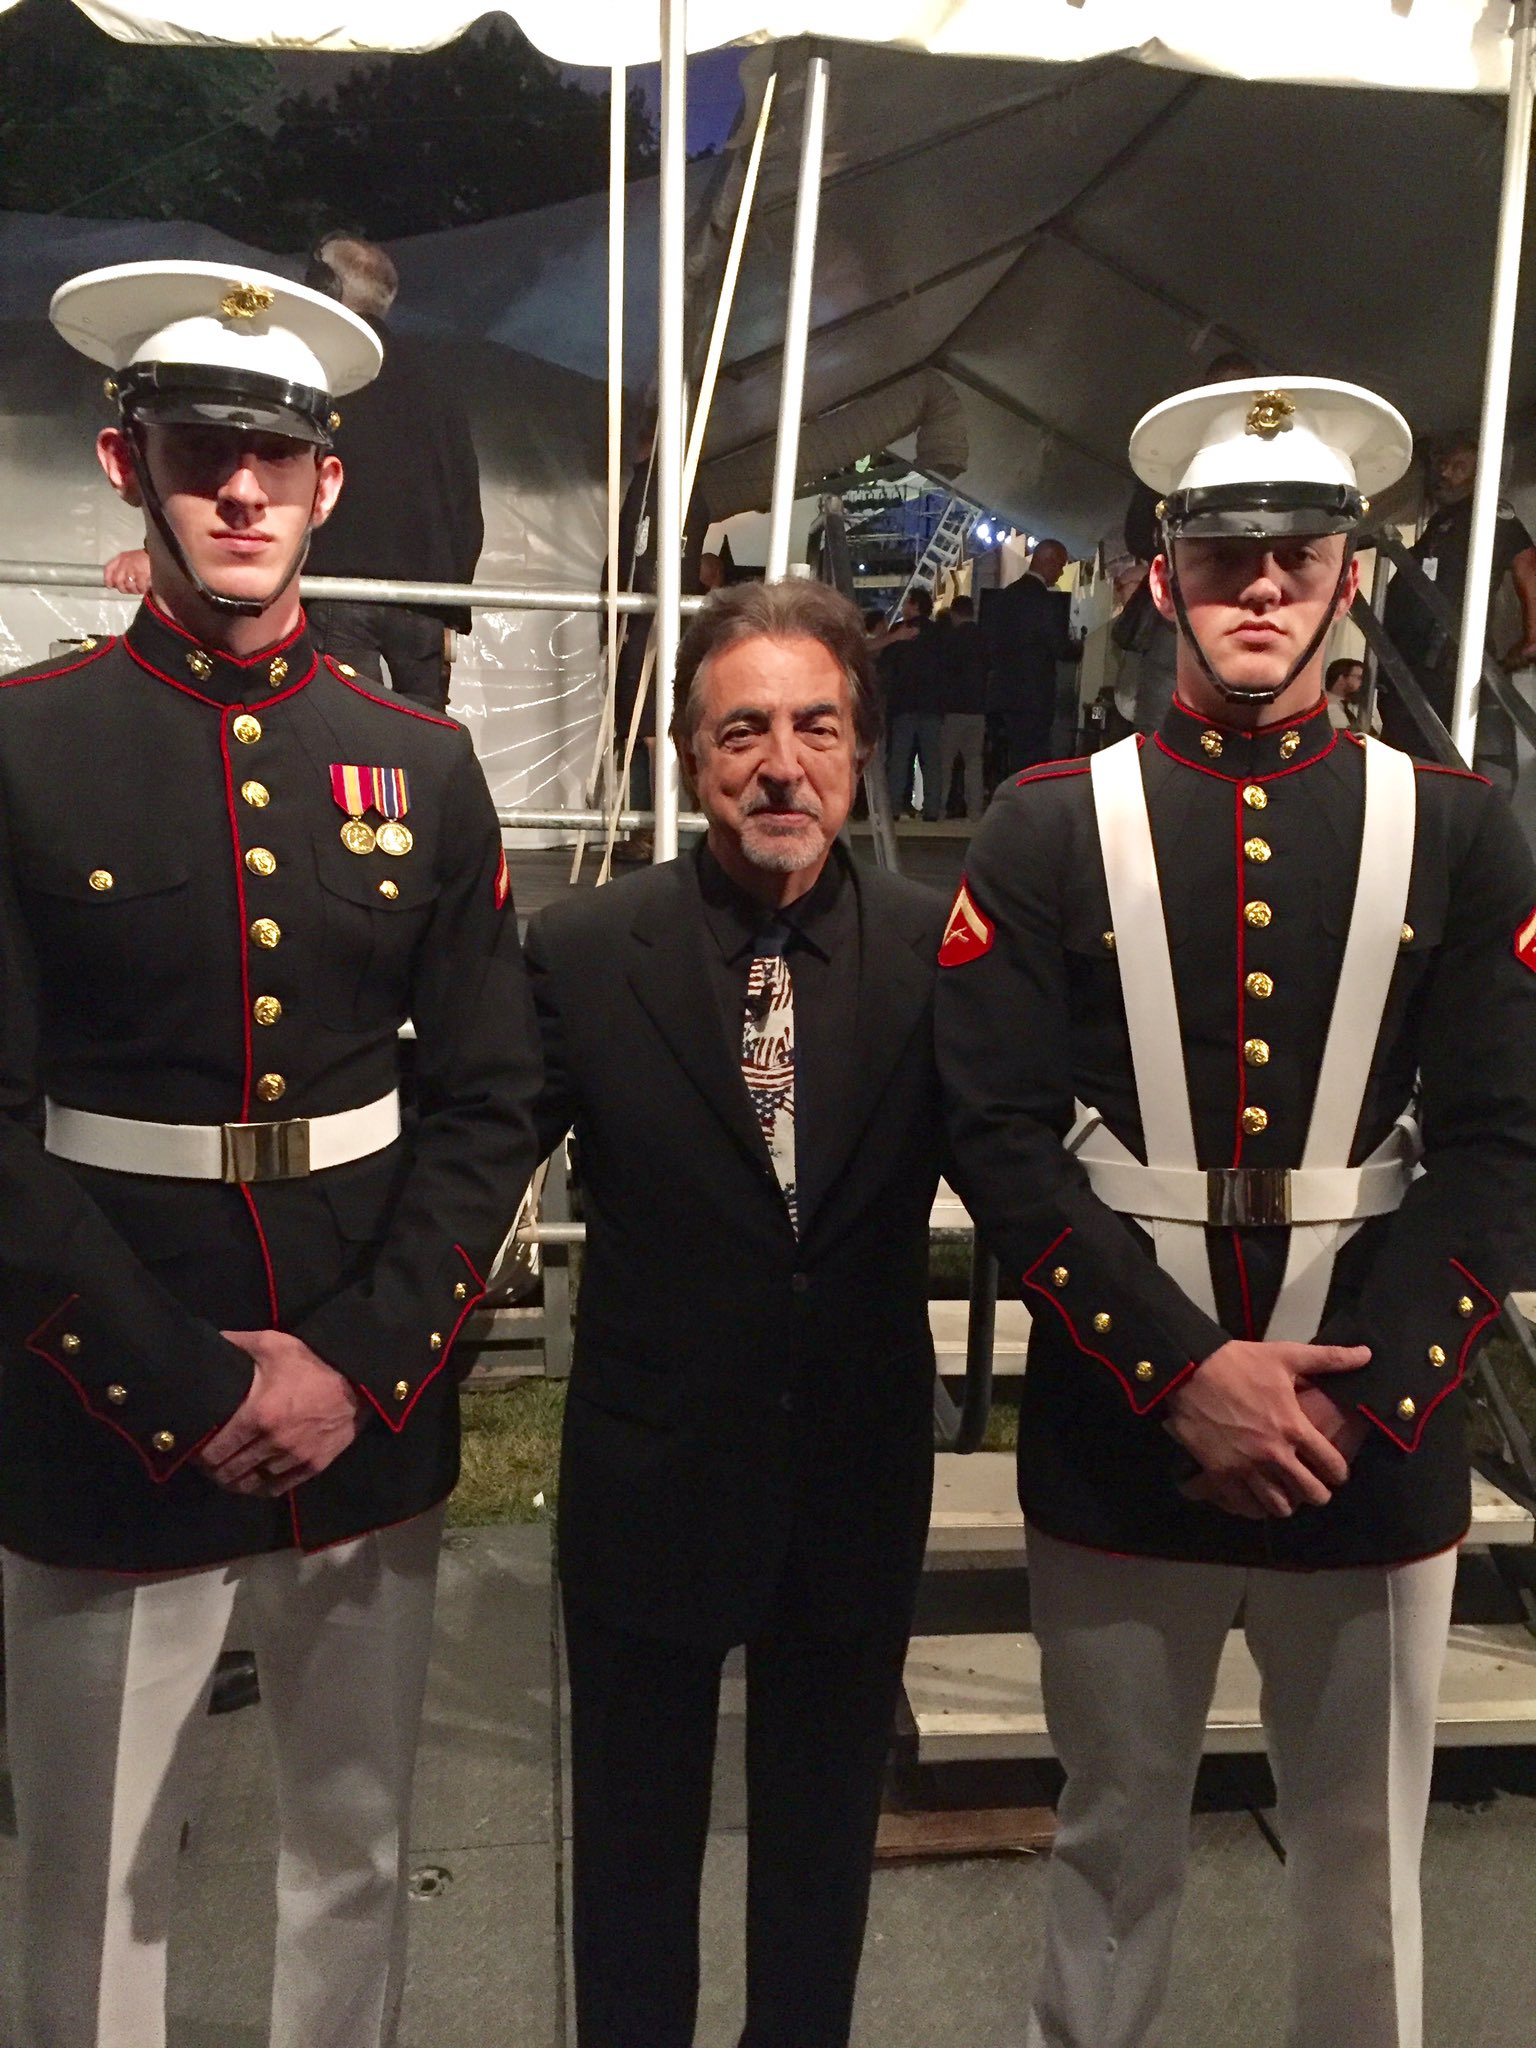 I use to think I was tall. #MemDayPBS #marines https://t.co/s5Jm5feQ5e